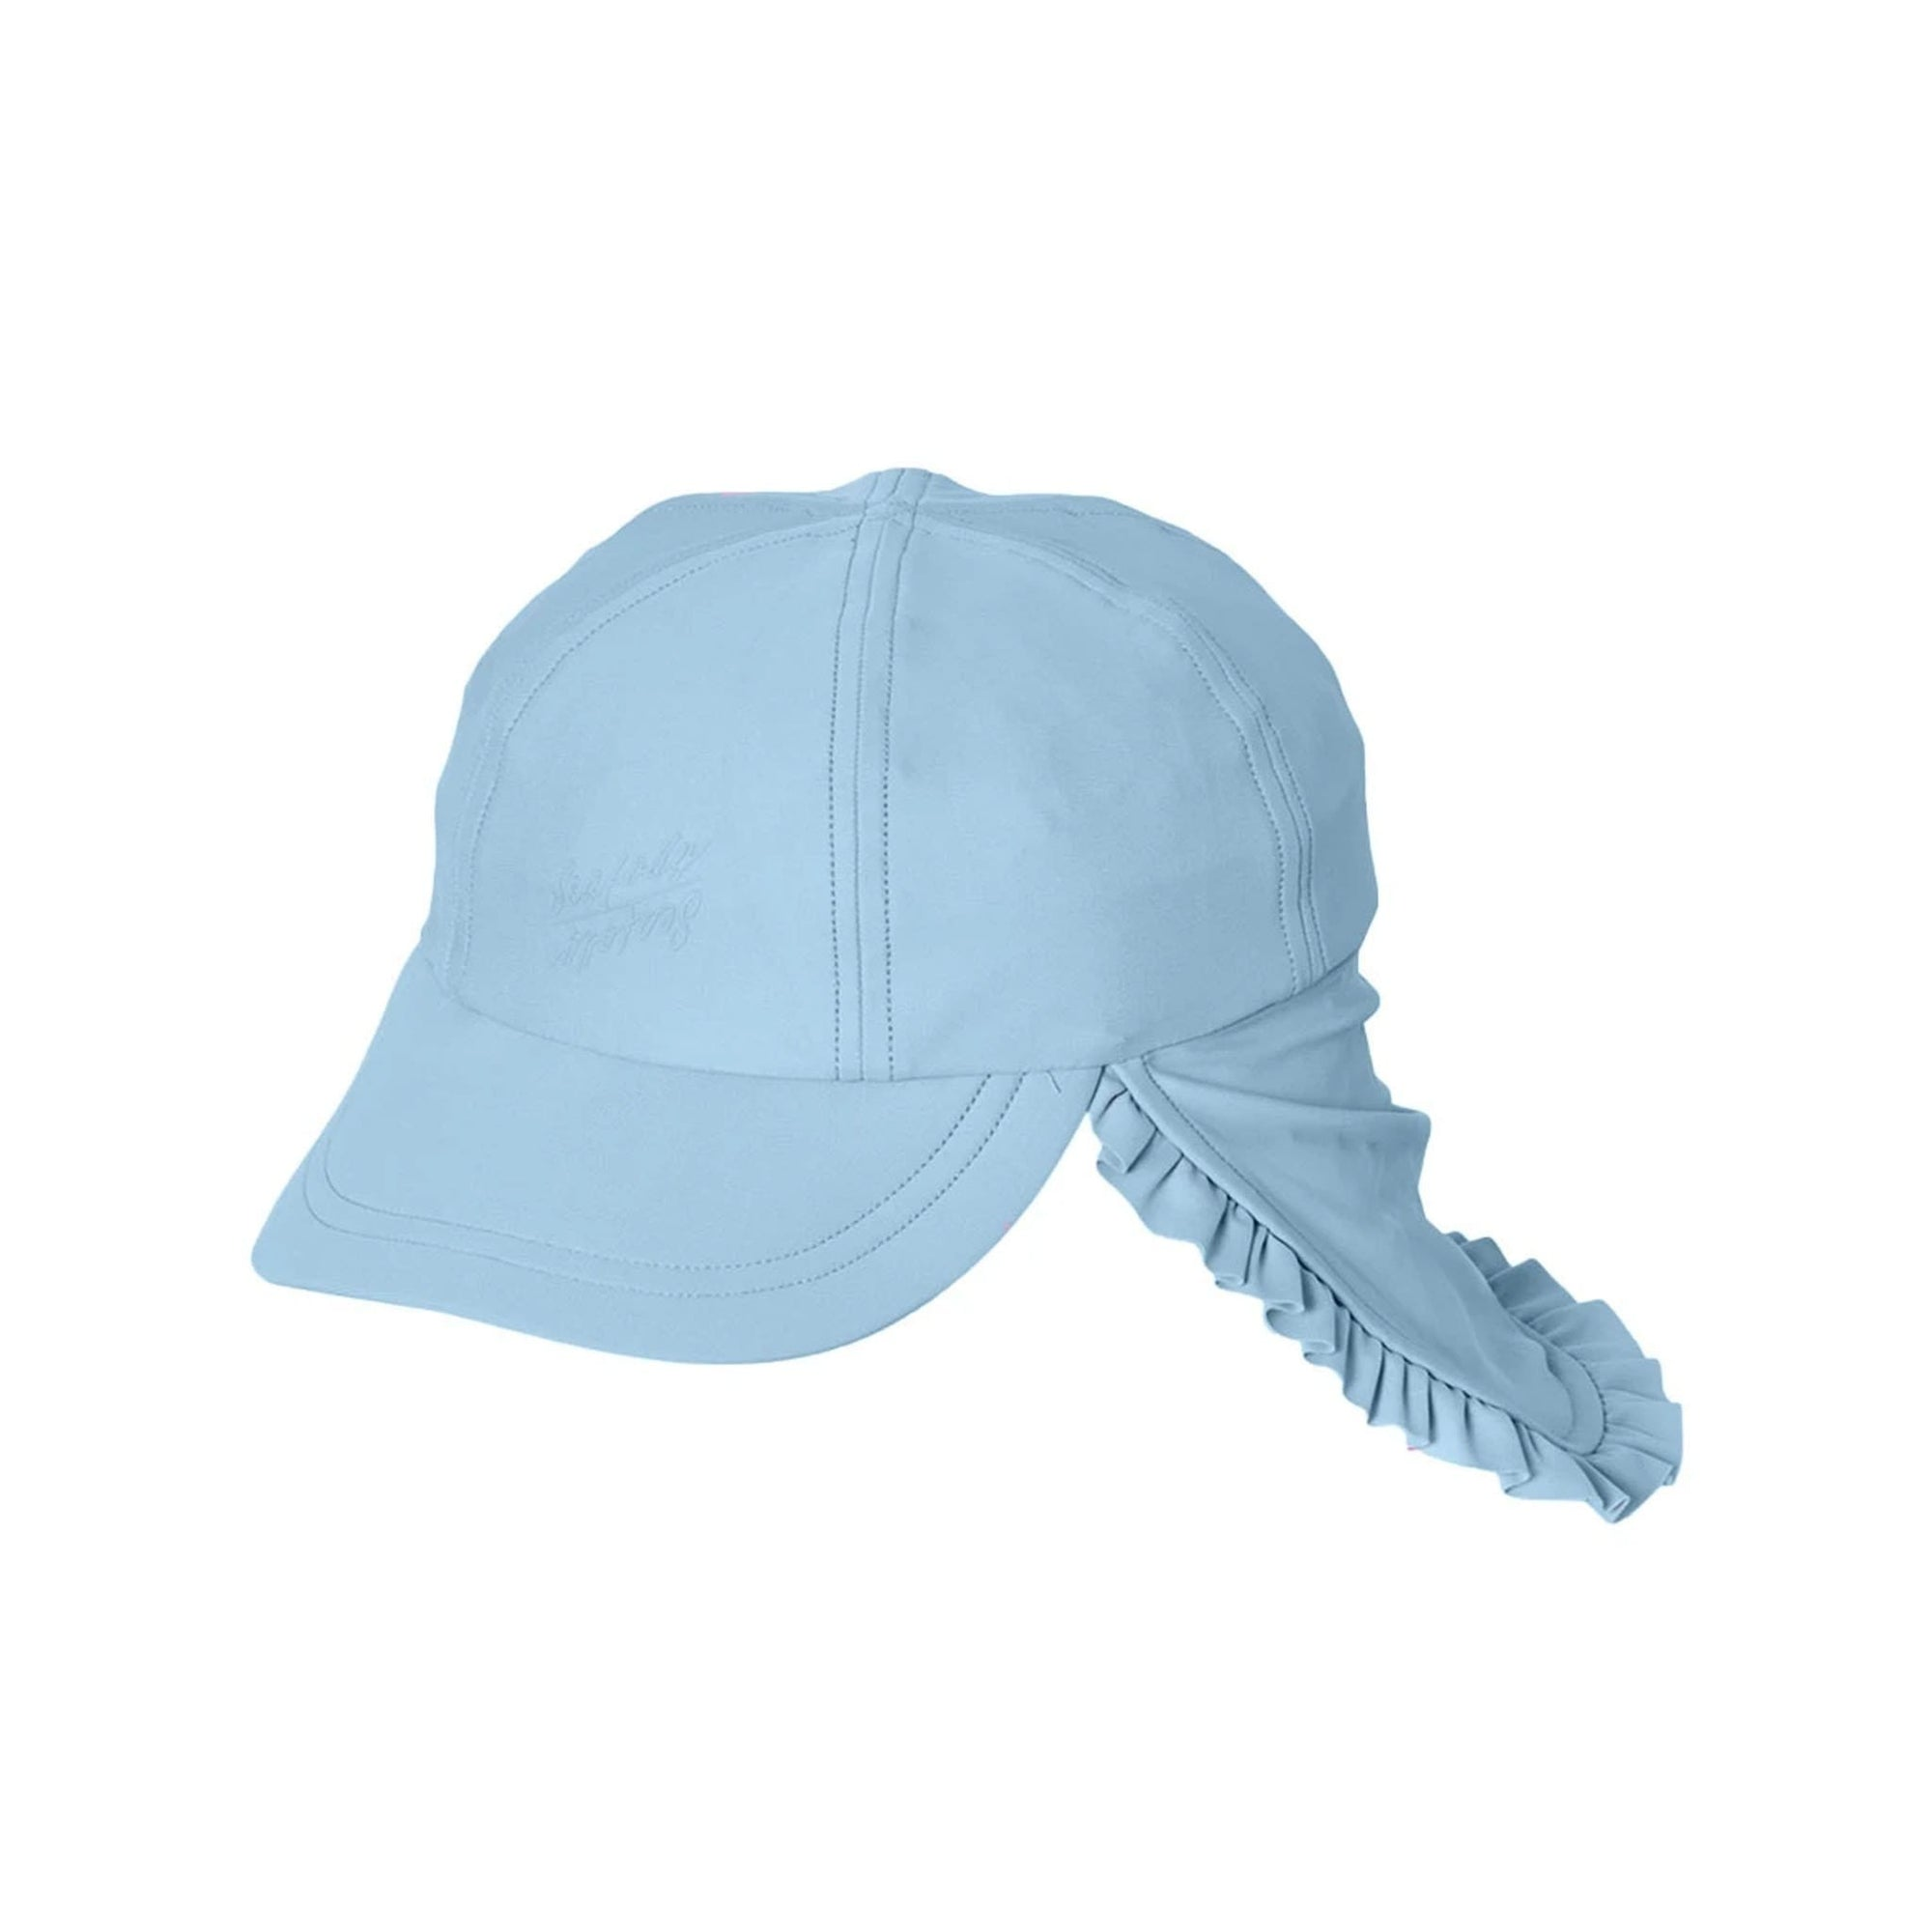 Seafolly Beach Flyer Cap - Corn Flower Blue